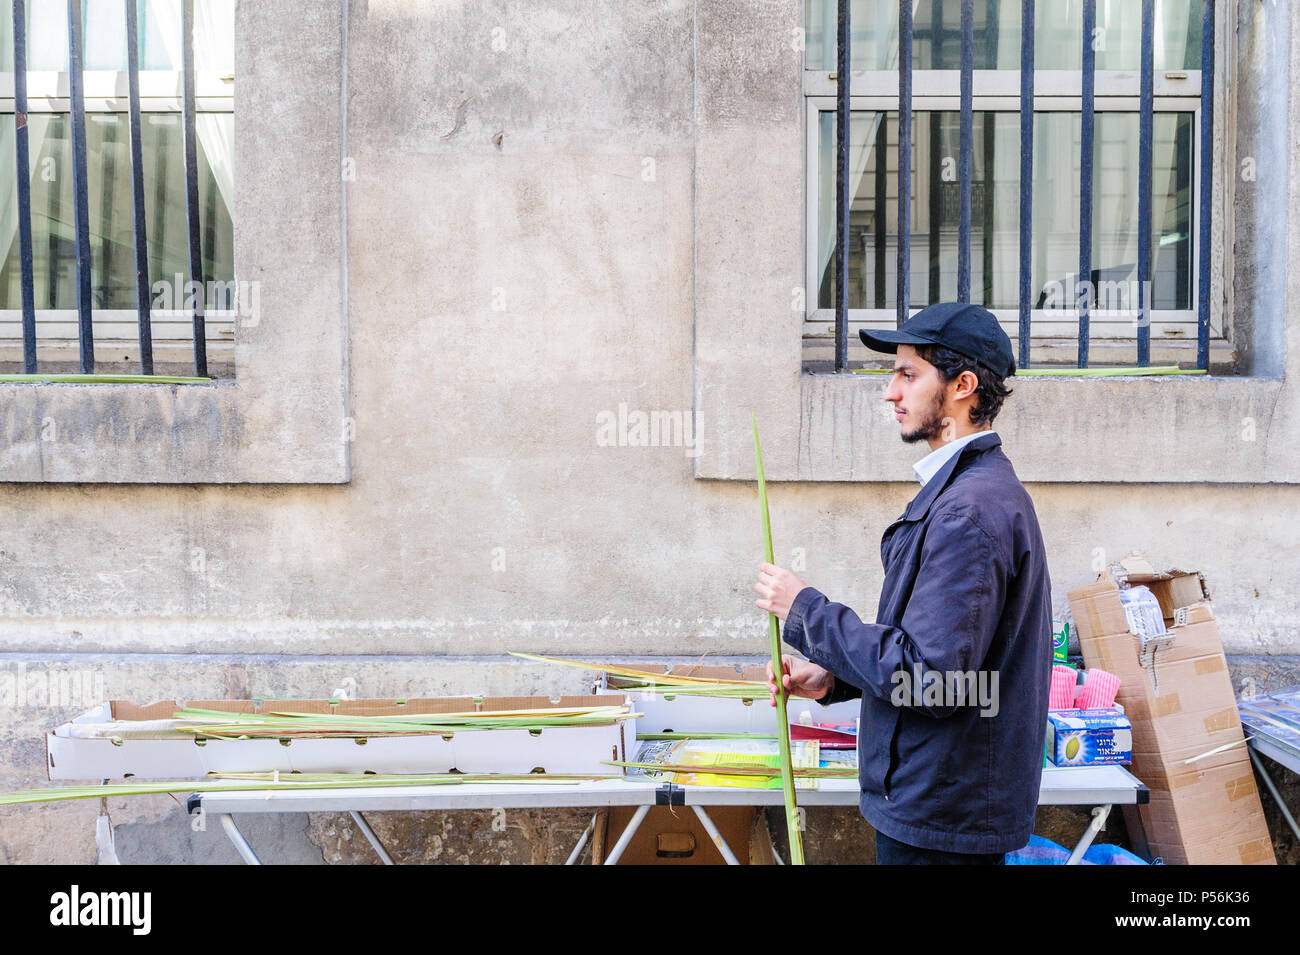 Paris, France - 27 september 2015: young man selling etrogs and lulavs at the sukkot market in the Marais - Stock Image